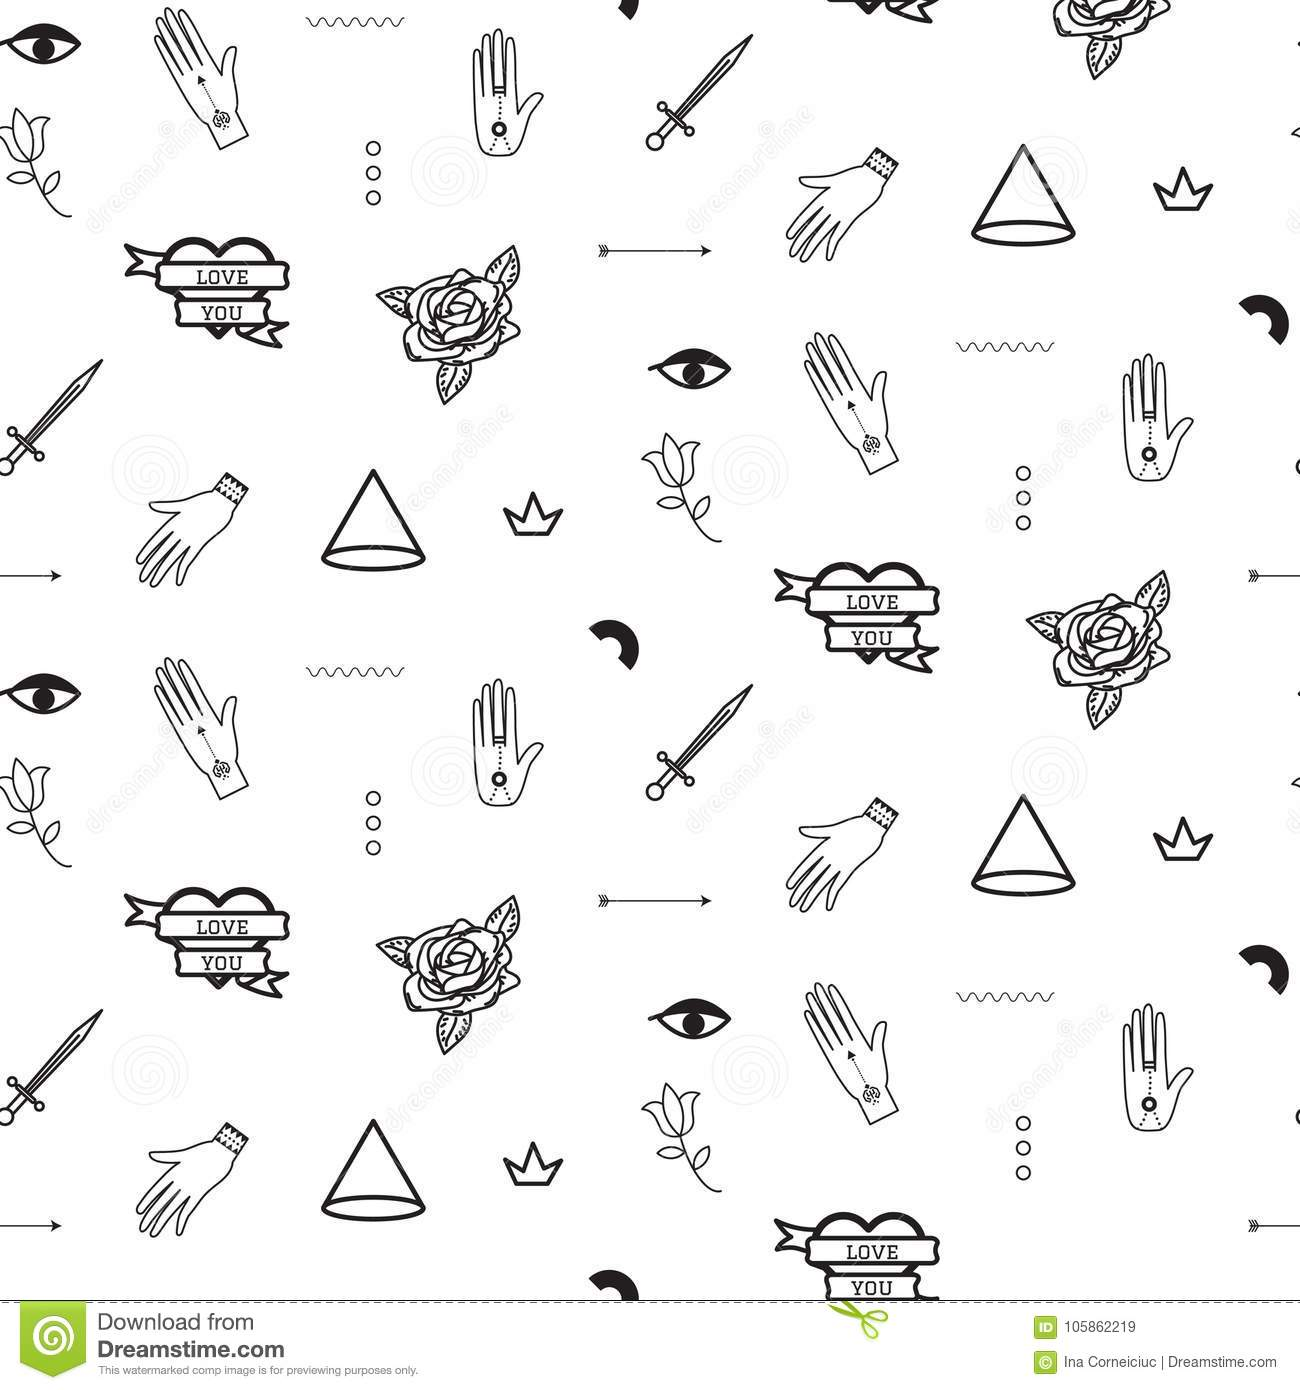 9c46b98c20ca7 Doodle Hipster Flash Tattoo Style Seamless Vector Pattern. Stock ...